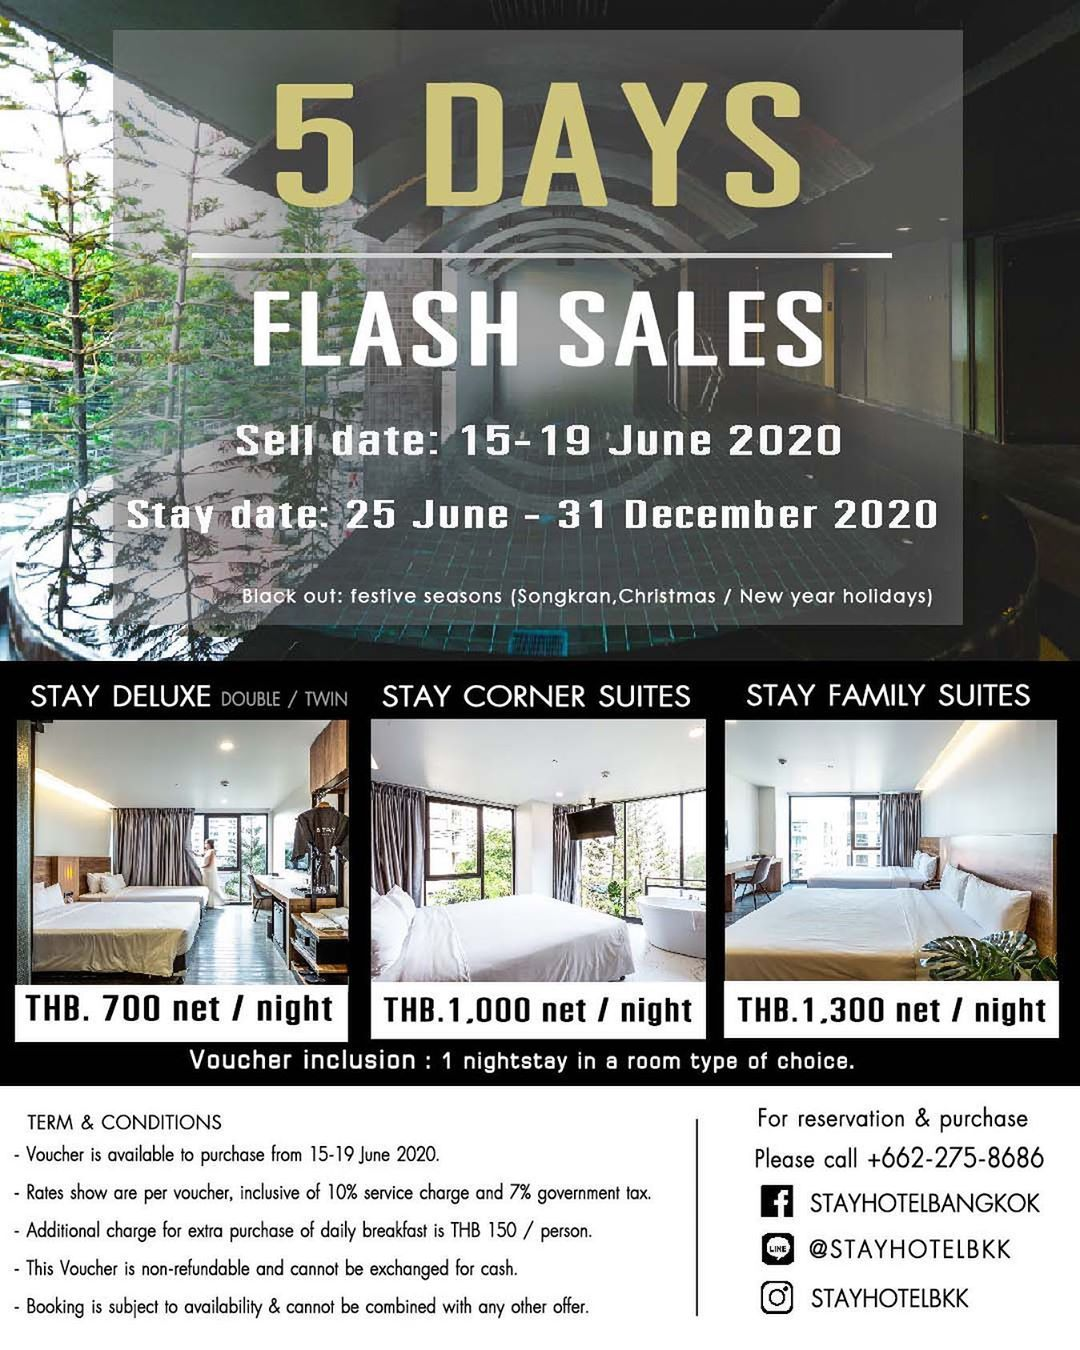 Buy Now Staycation Later With Our 5 Days Flash Sales Room Starts At Thb700 Night Snap Up Your Next Escape Now And New Year Holidays Festival Season Night